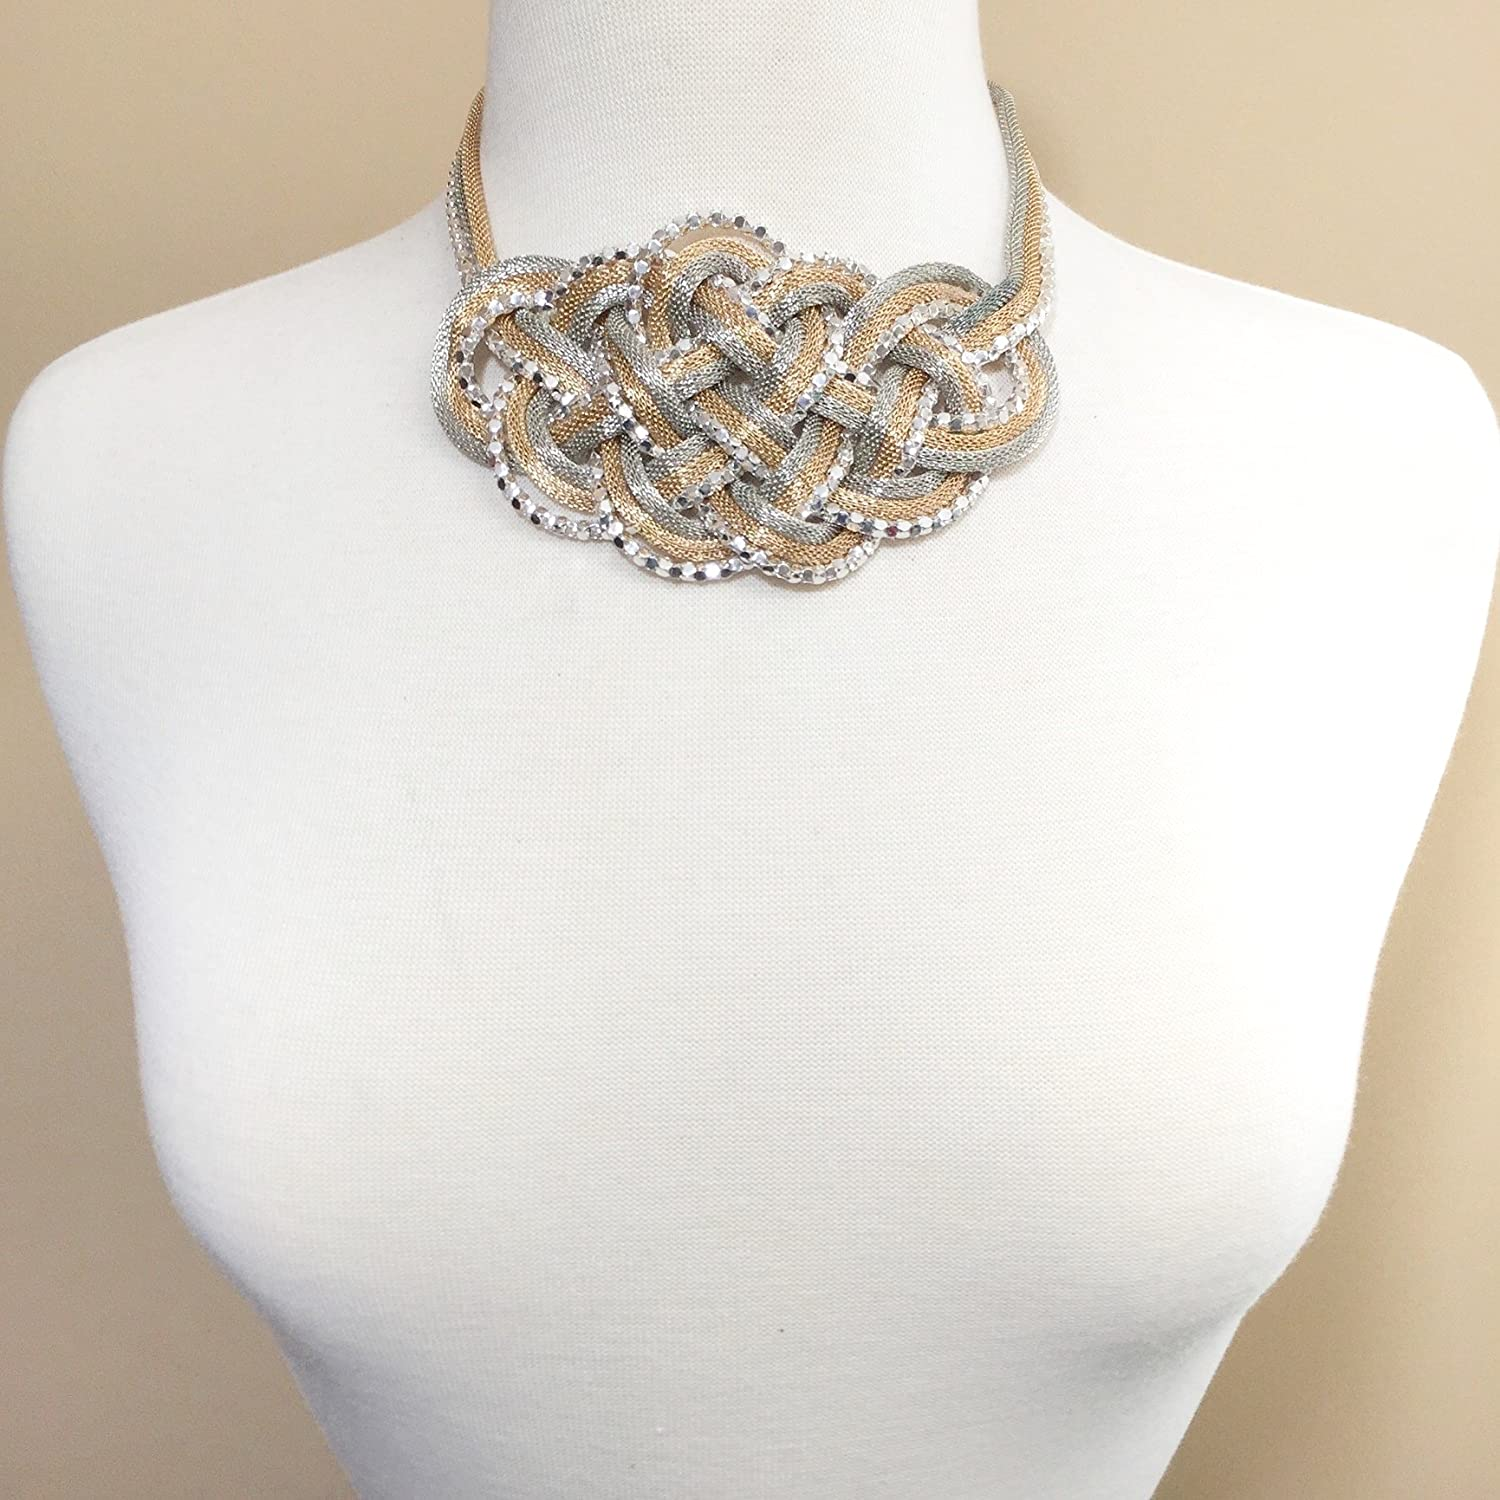 Gypsy Jewels Braided Knot Multi Strand Statement Necklace /& Post Earrings Set